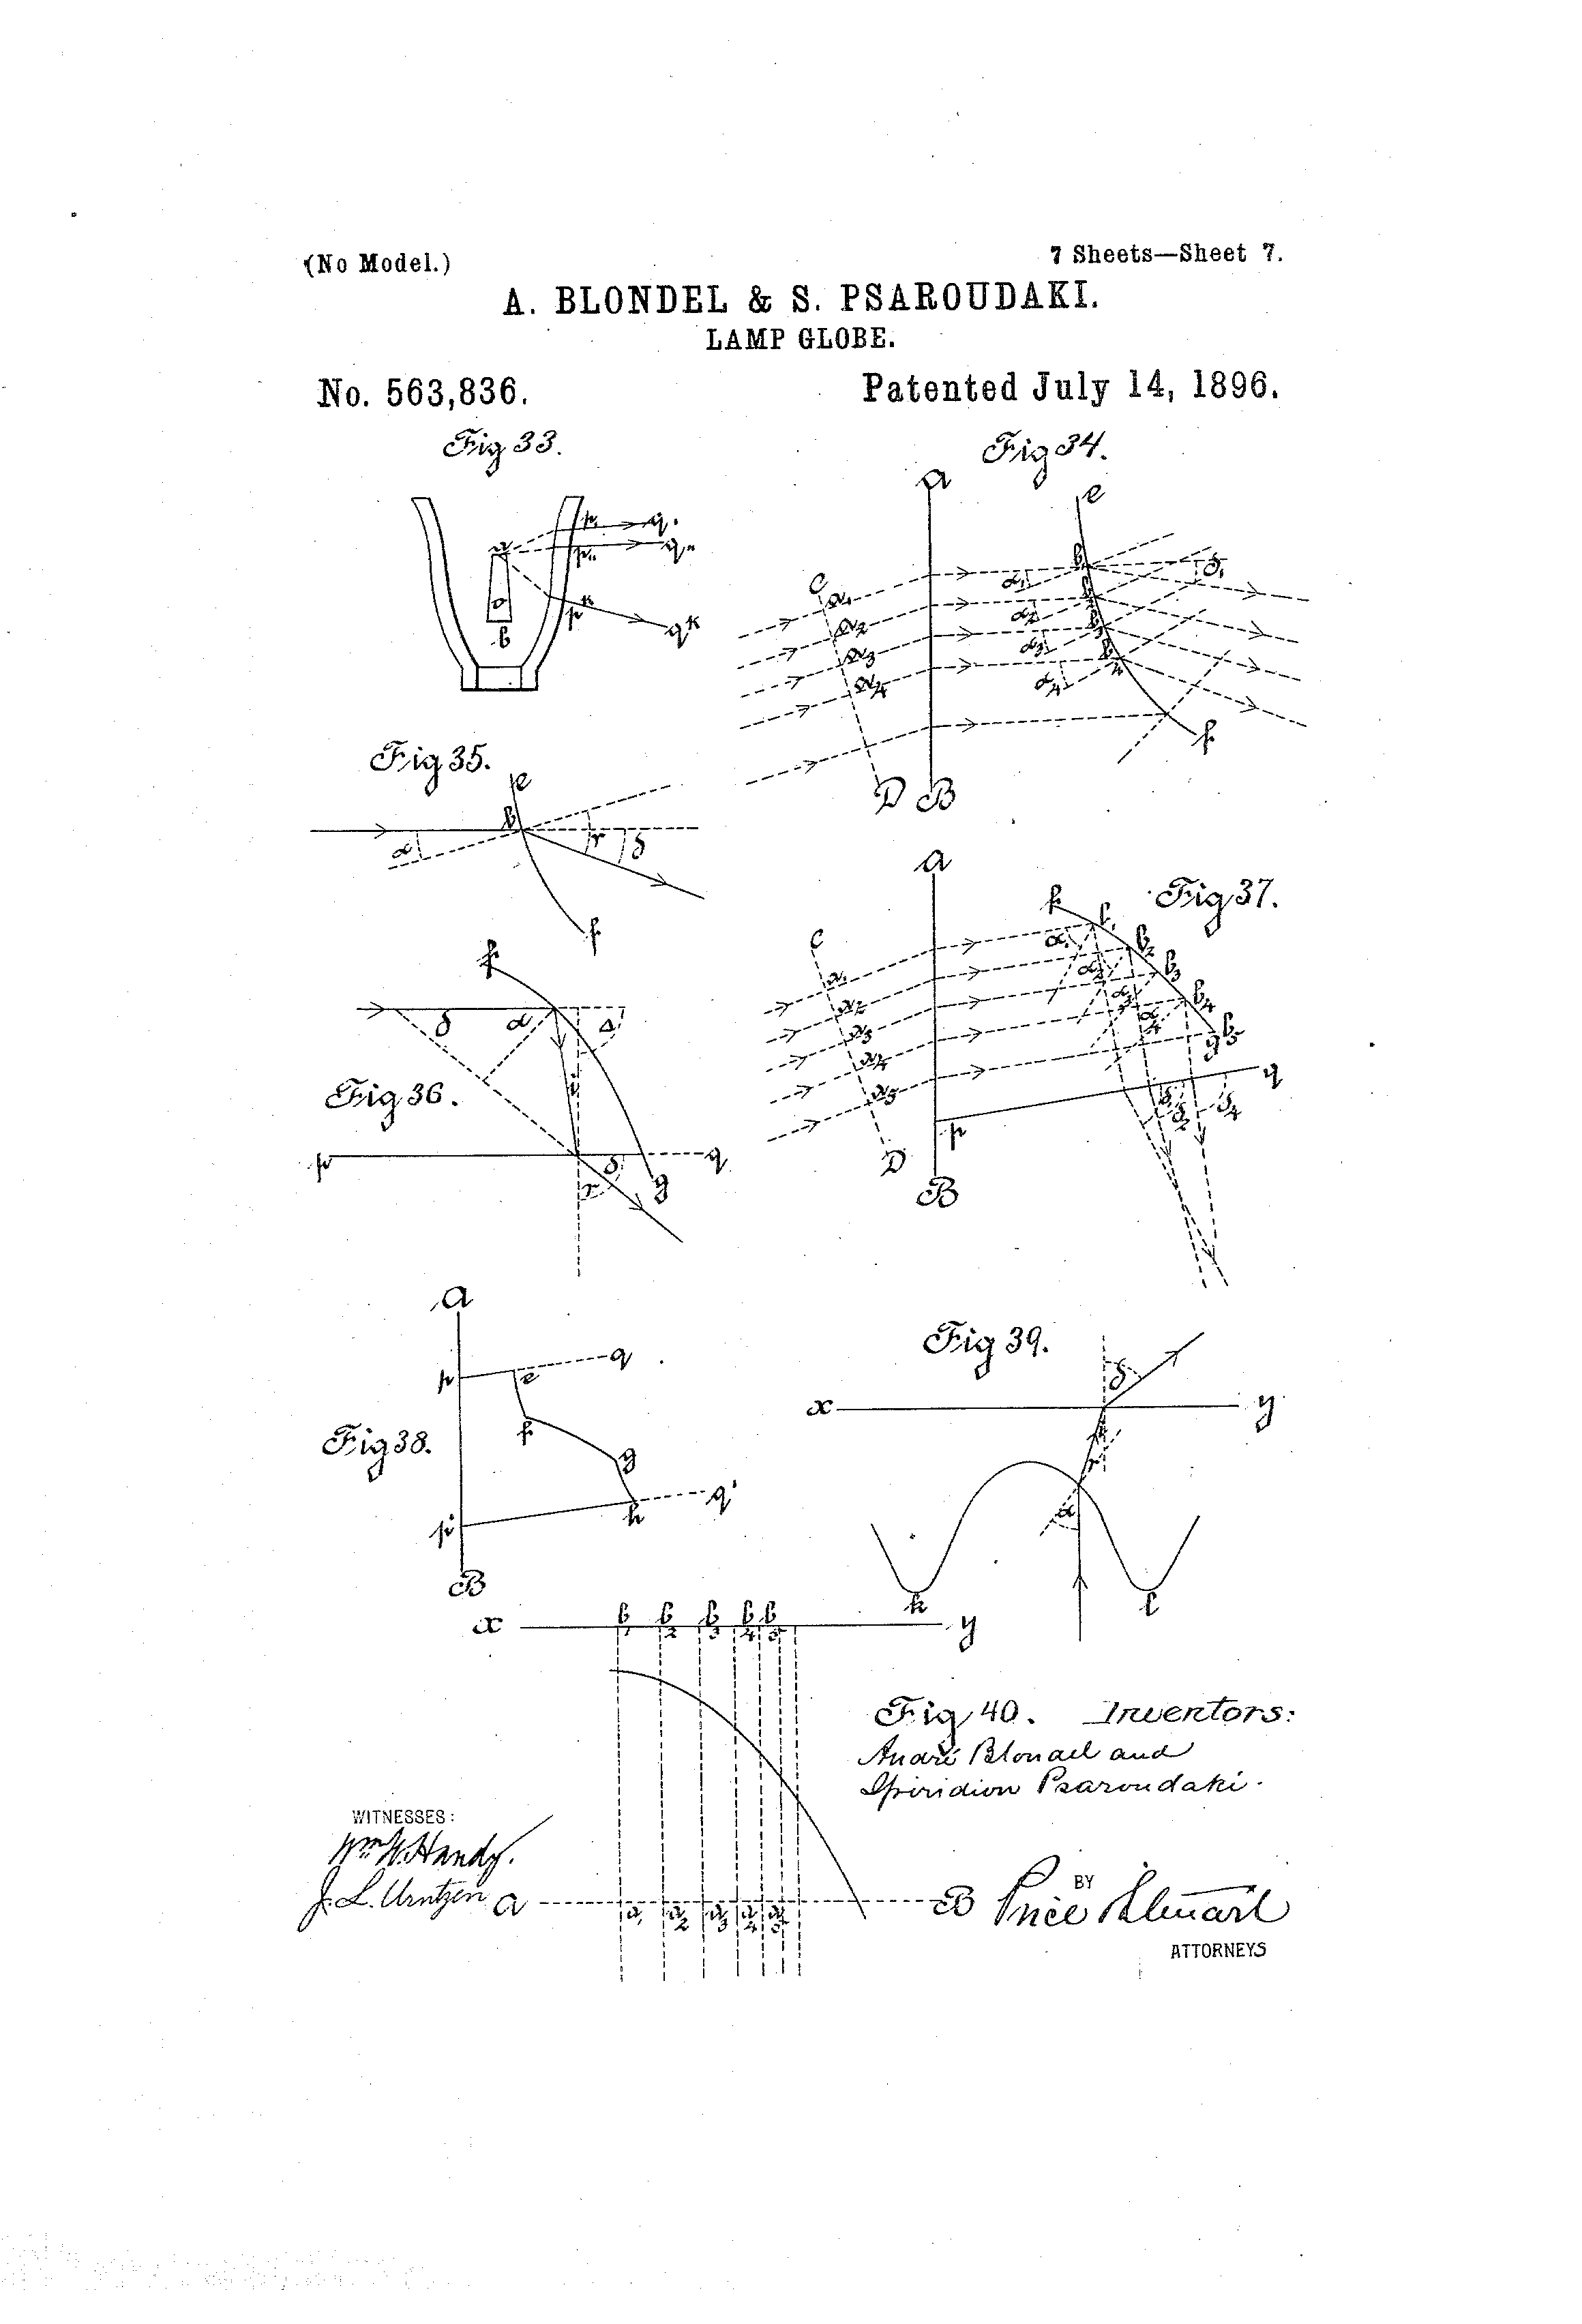 Patent pg 7.png